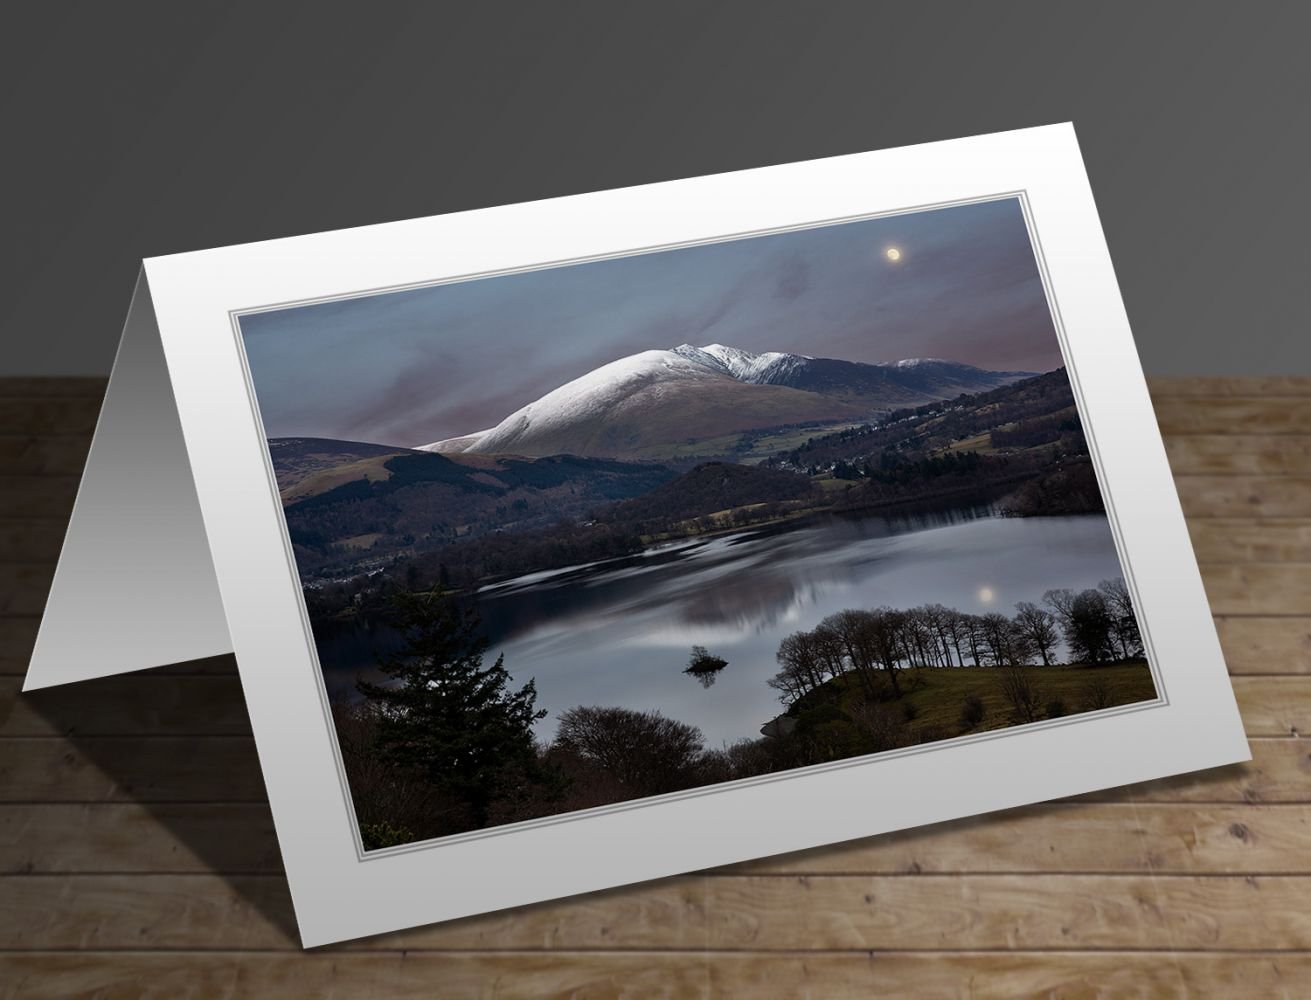 A greeting card containing the image Moonrise over Blencathra by Martin Lawrence